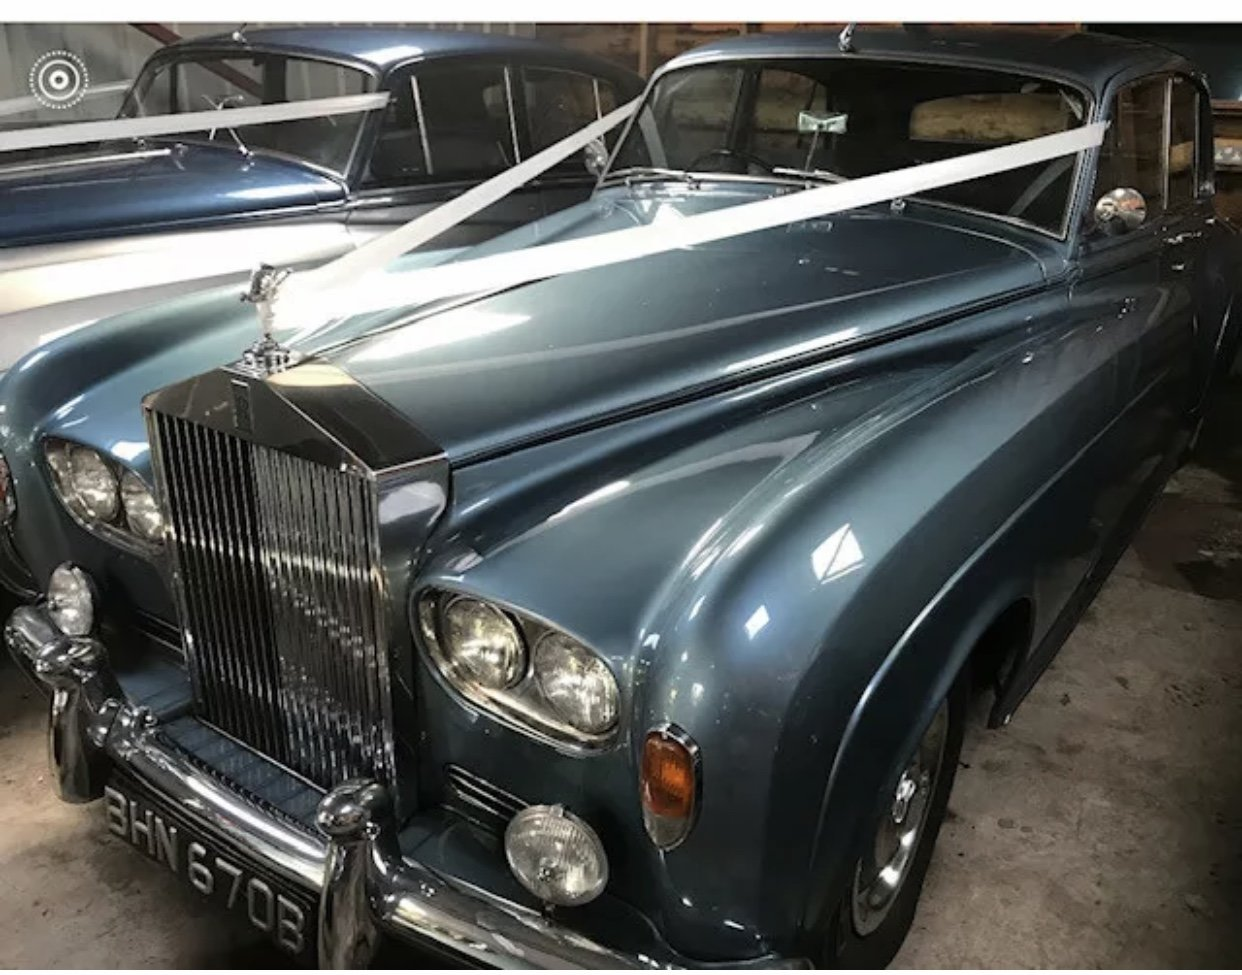 1964 Rolls-Royce Silver Cloud 111 For Sale (picture 2 of 6)